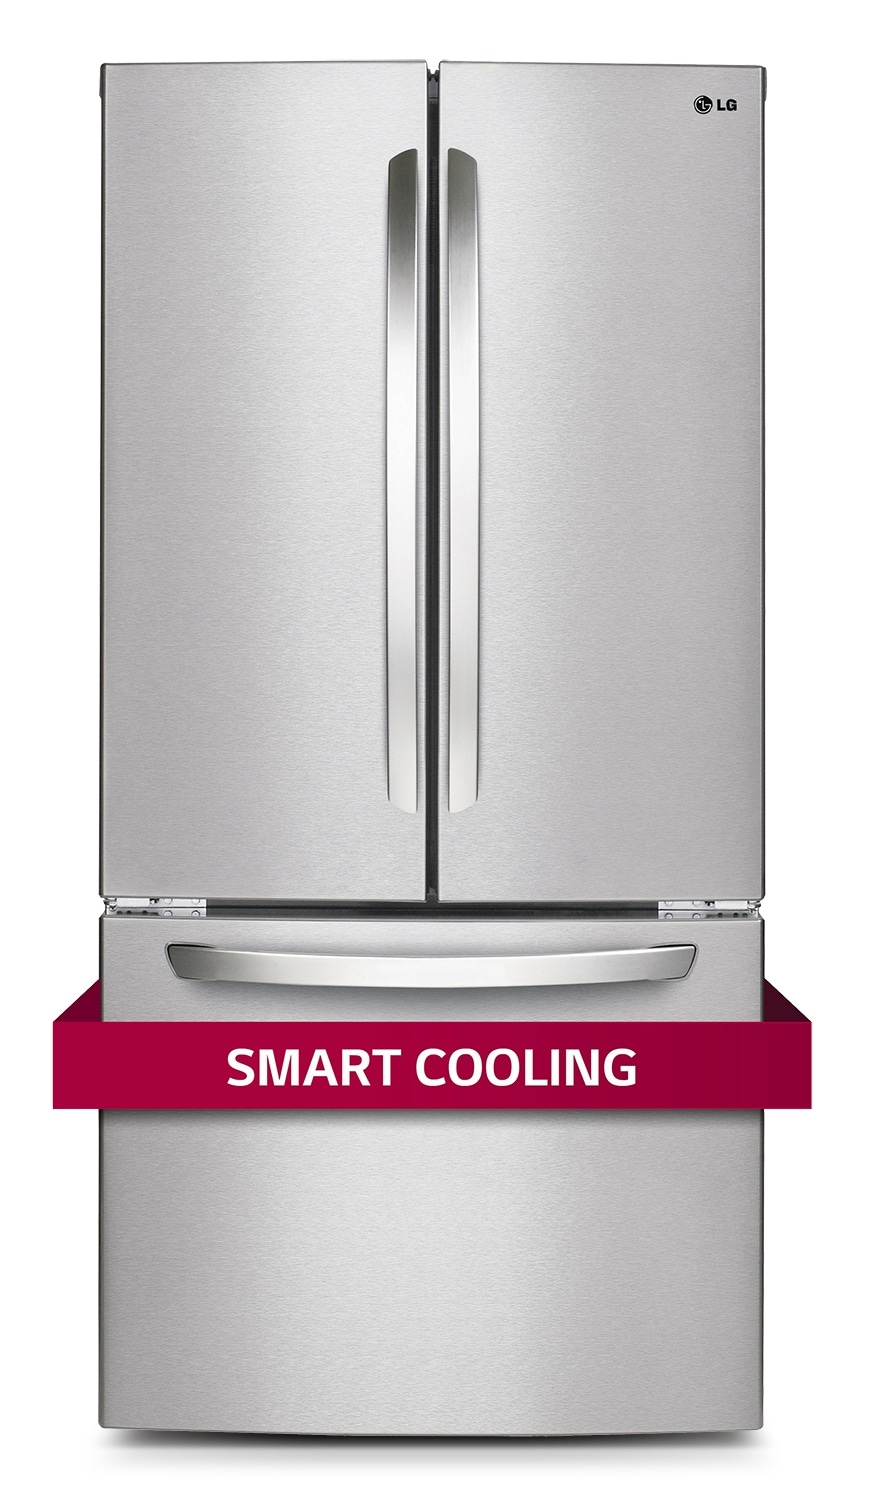 Refrigerators and Freezers - LG Appliances Stainless Steel French Door Refrigerator (23.9 Cu. Ft.) - LFC24786ST